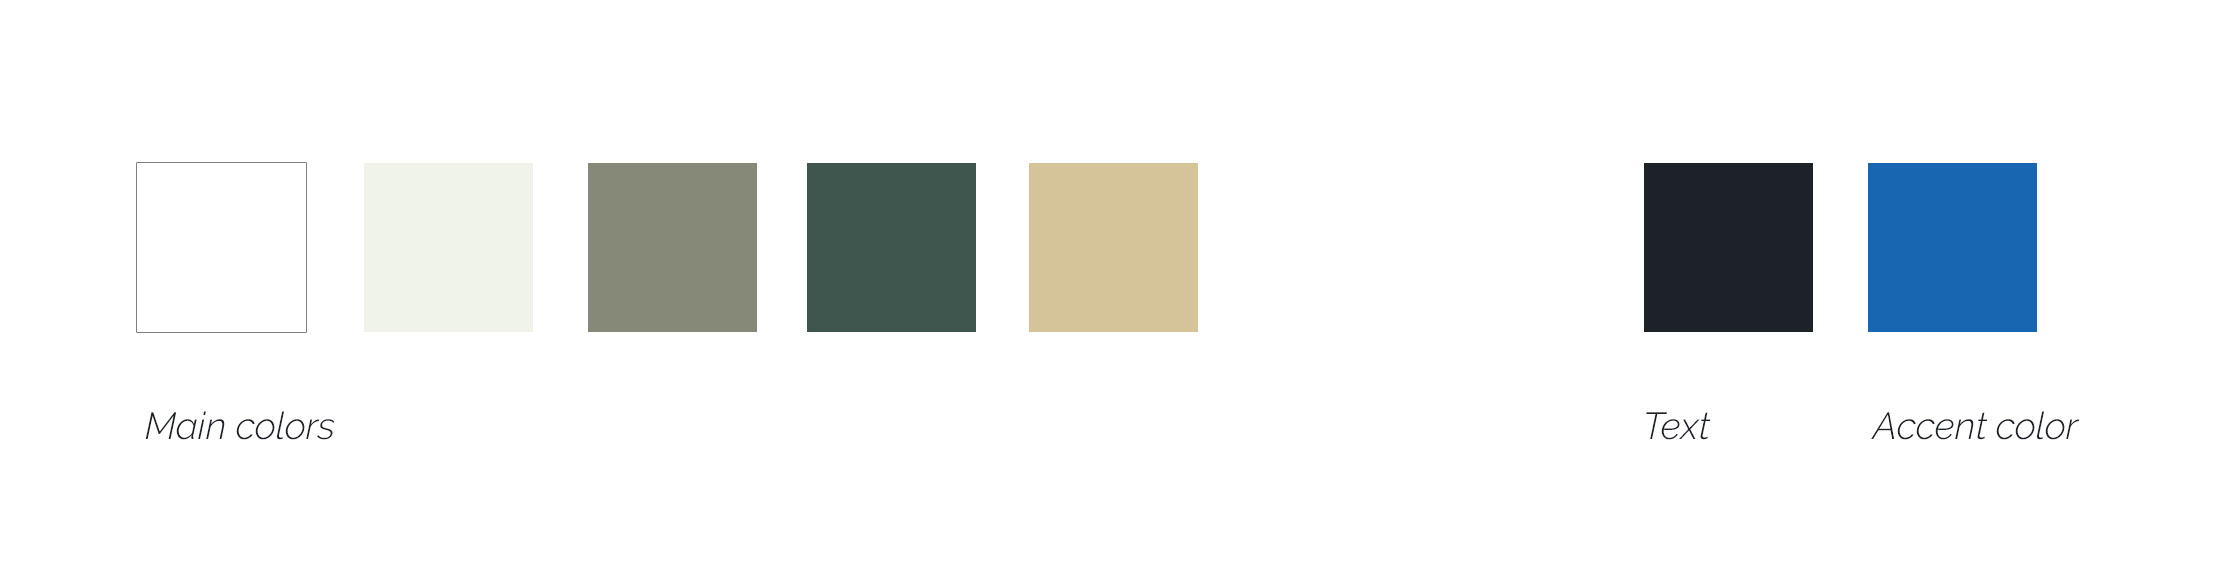 colosseum spa branding color scheme